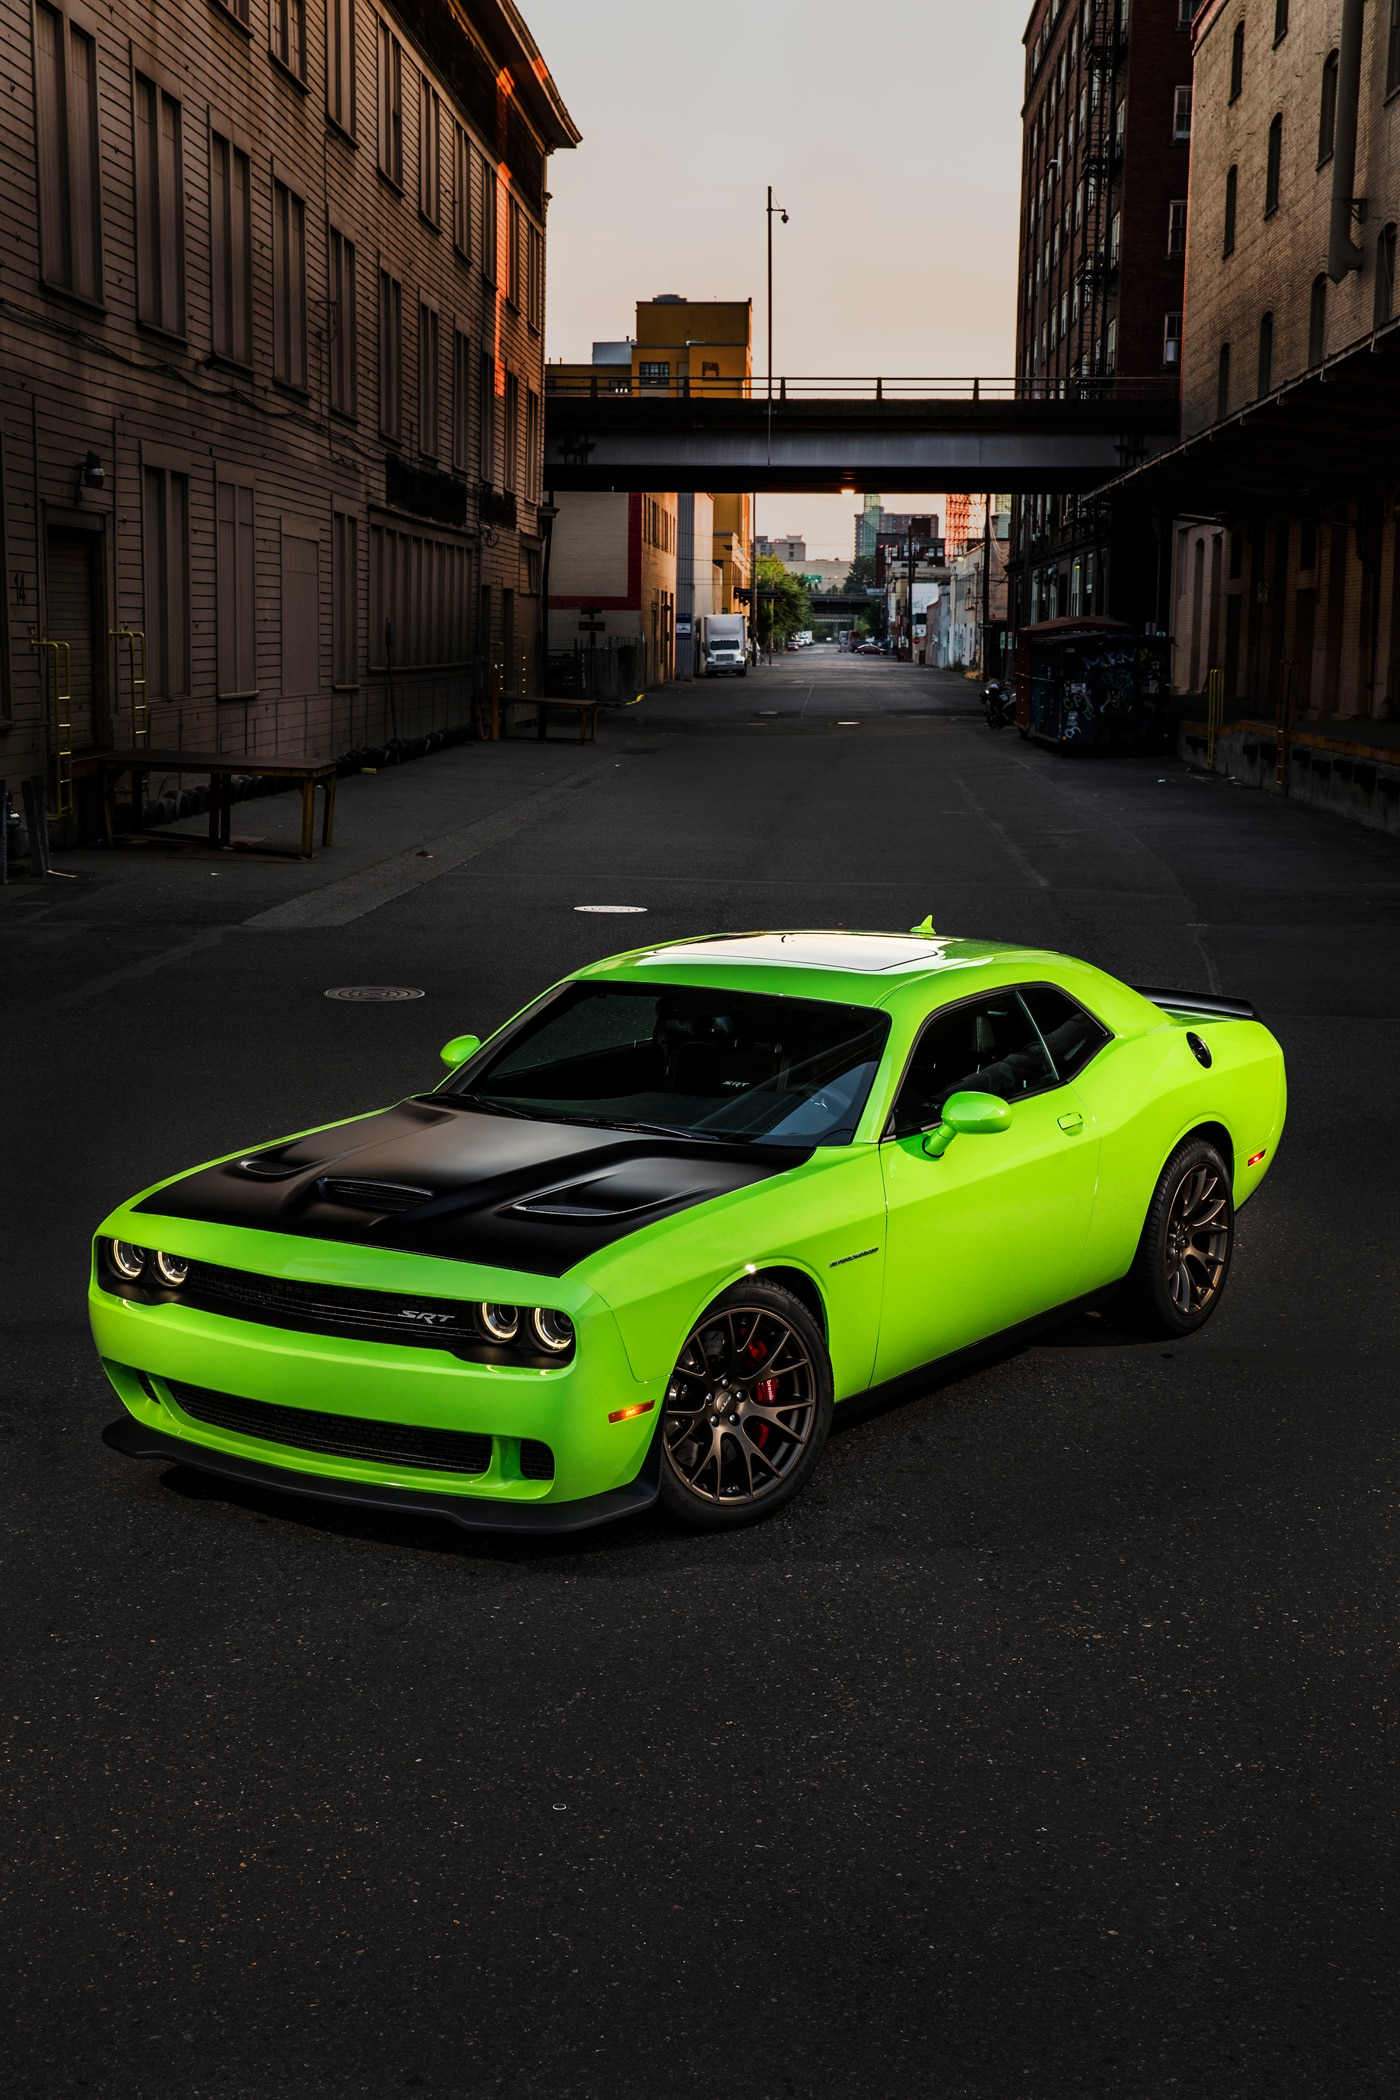 2015 Dodge Challenger Hellcat For Sale >> Driving a 2015 Dodge Challenger Hellcat in a Snowstorm